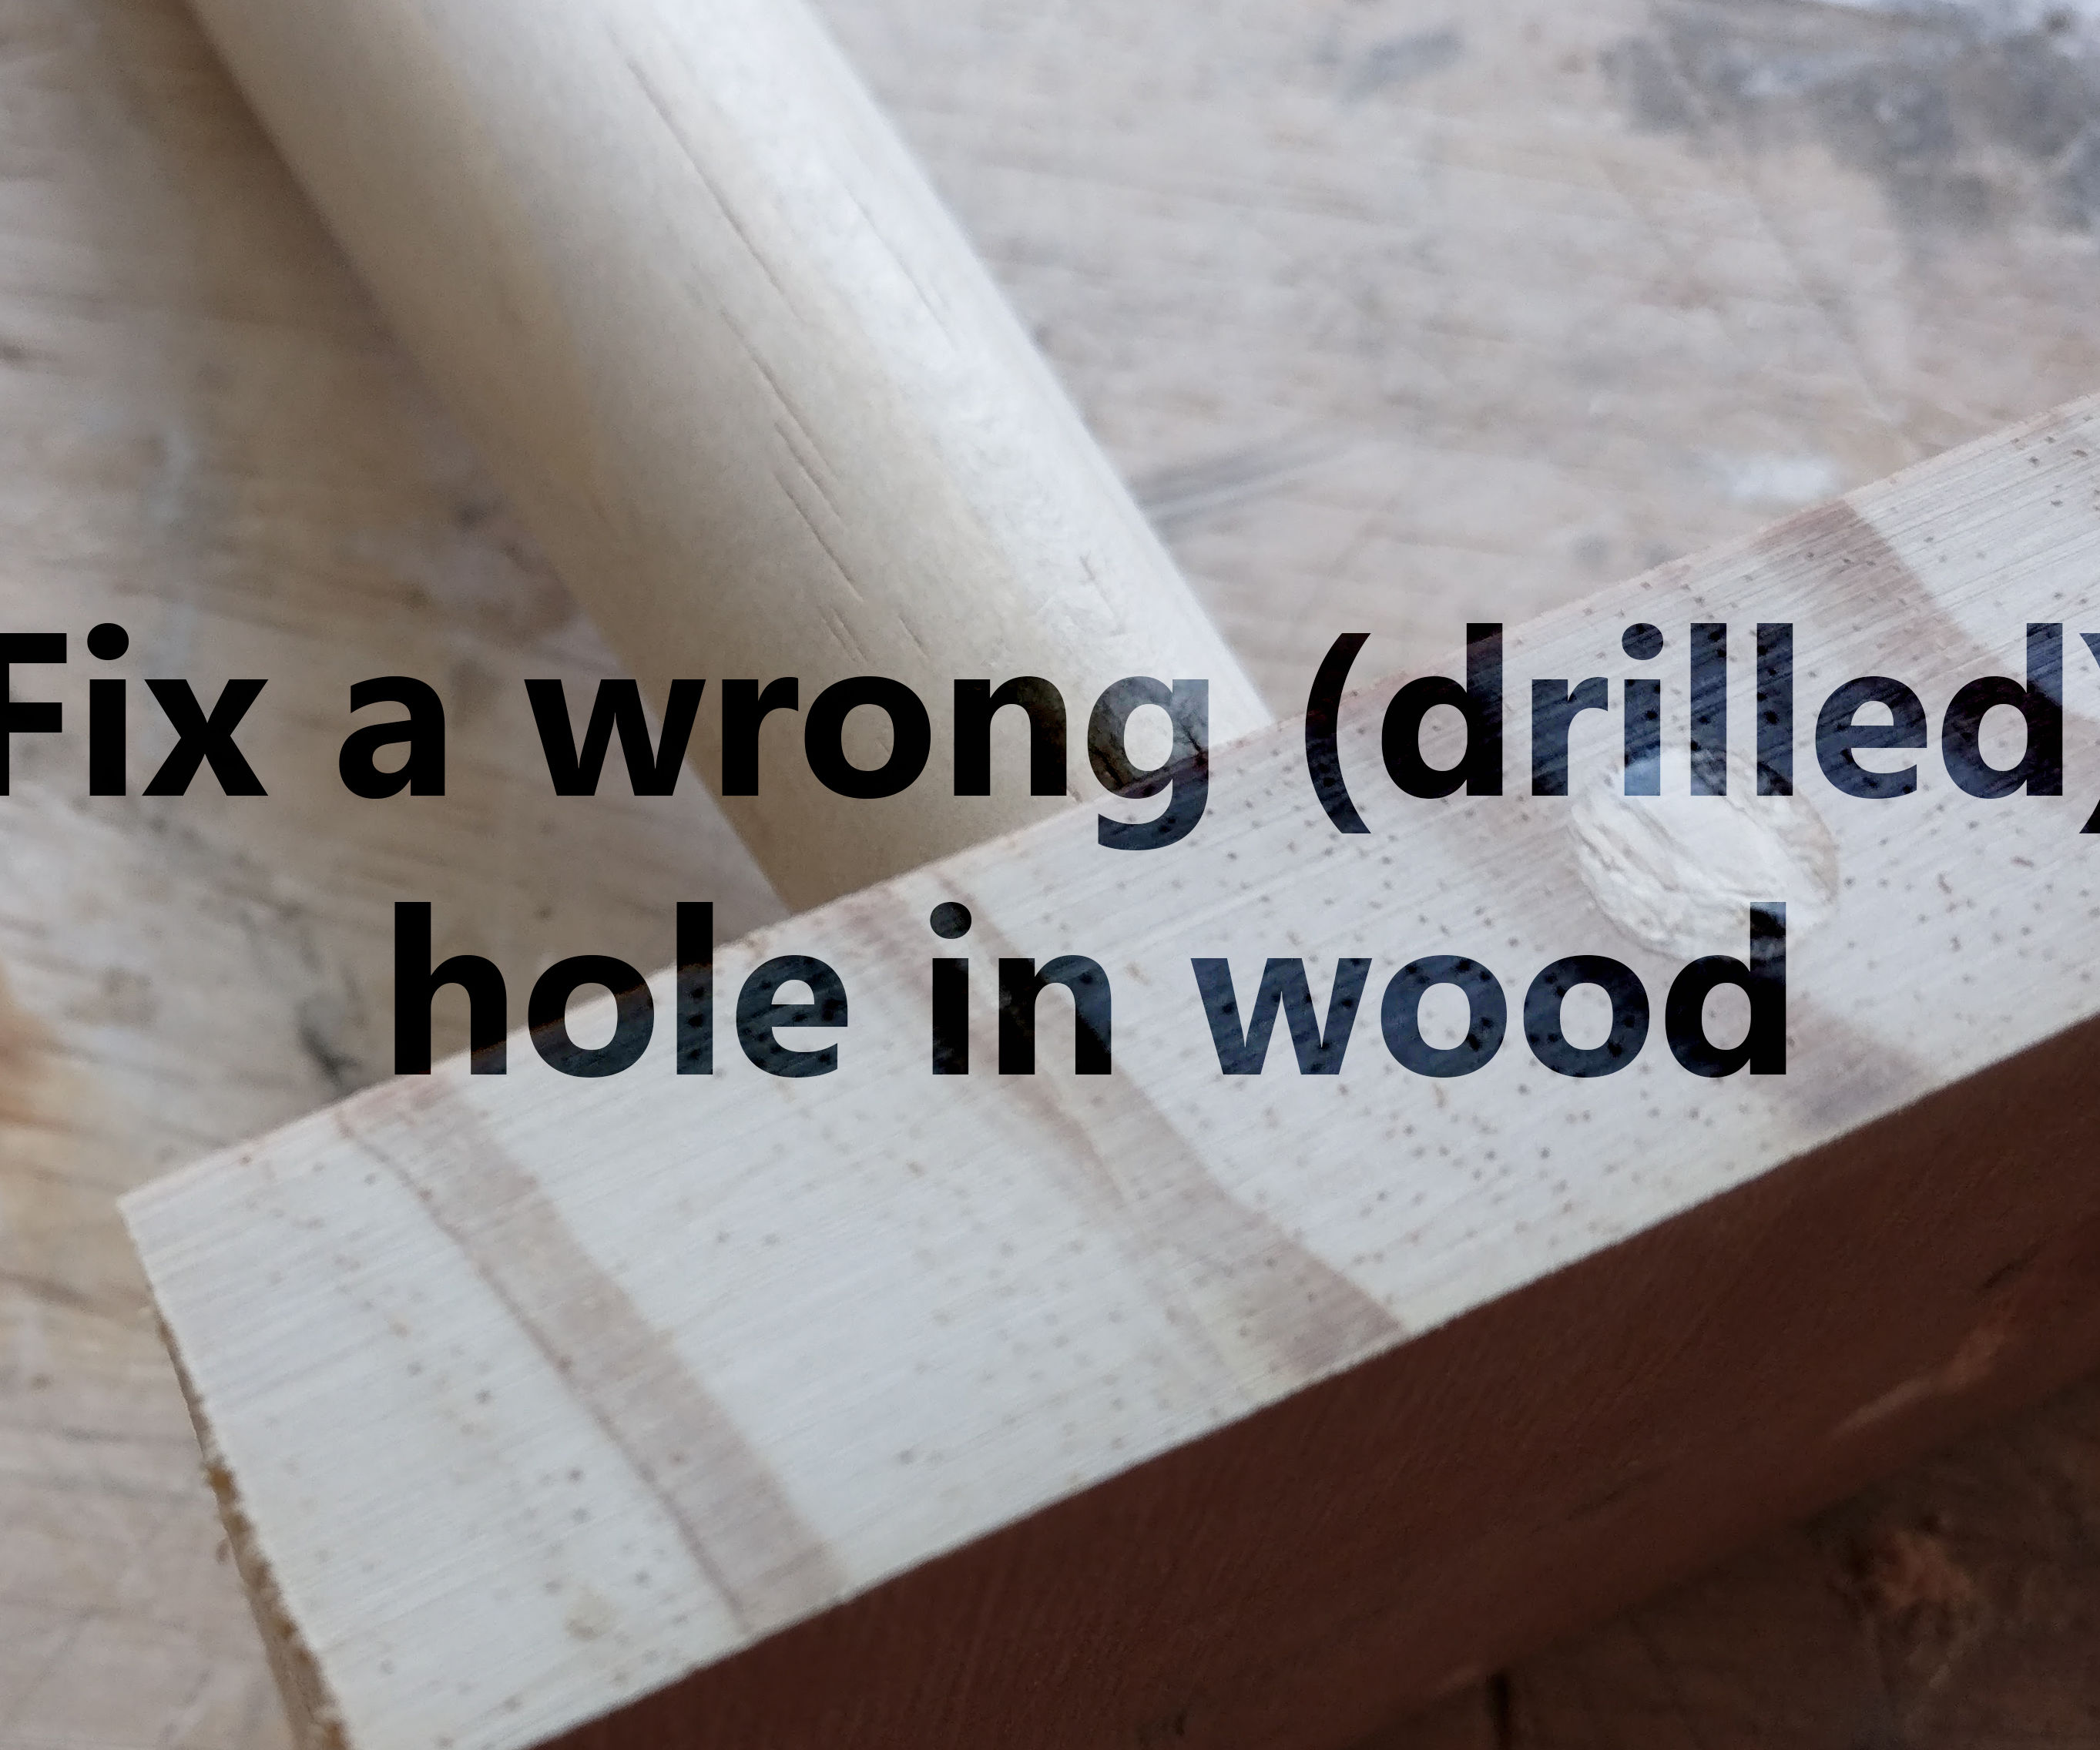 Invisible Glue Joints: Fix a Wrong Hole (drilled) in Wood (werkplaatsidc)